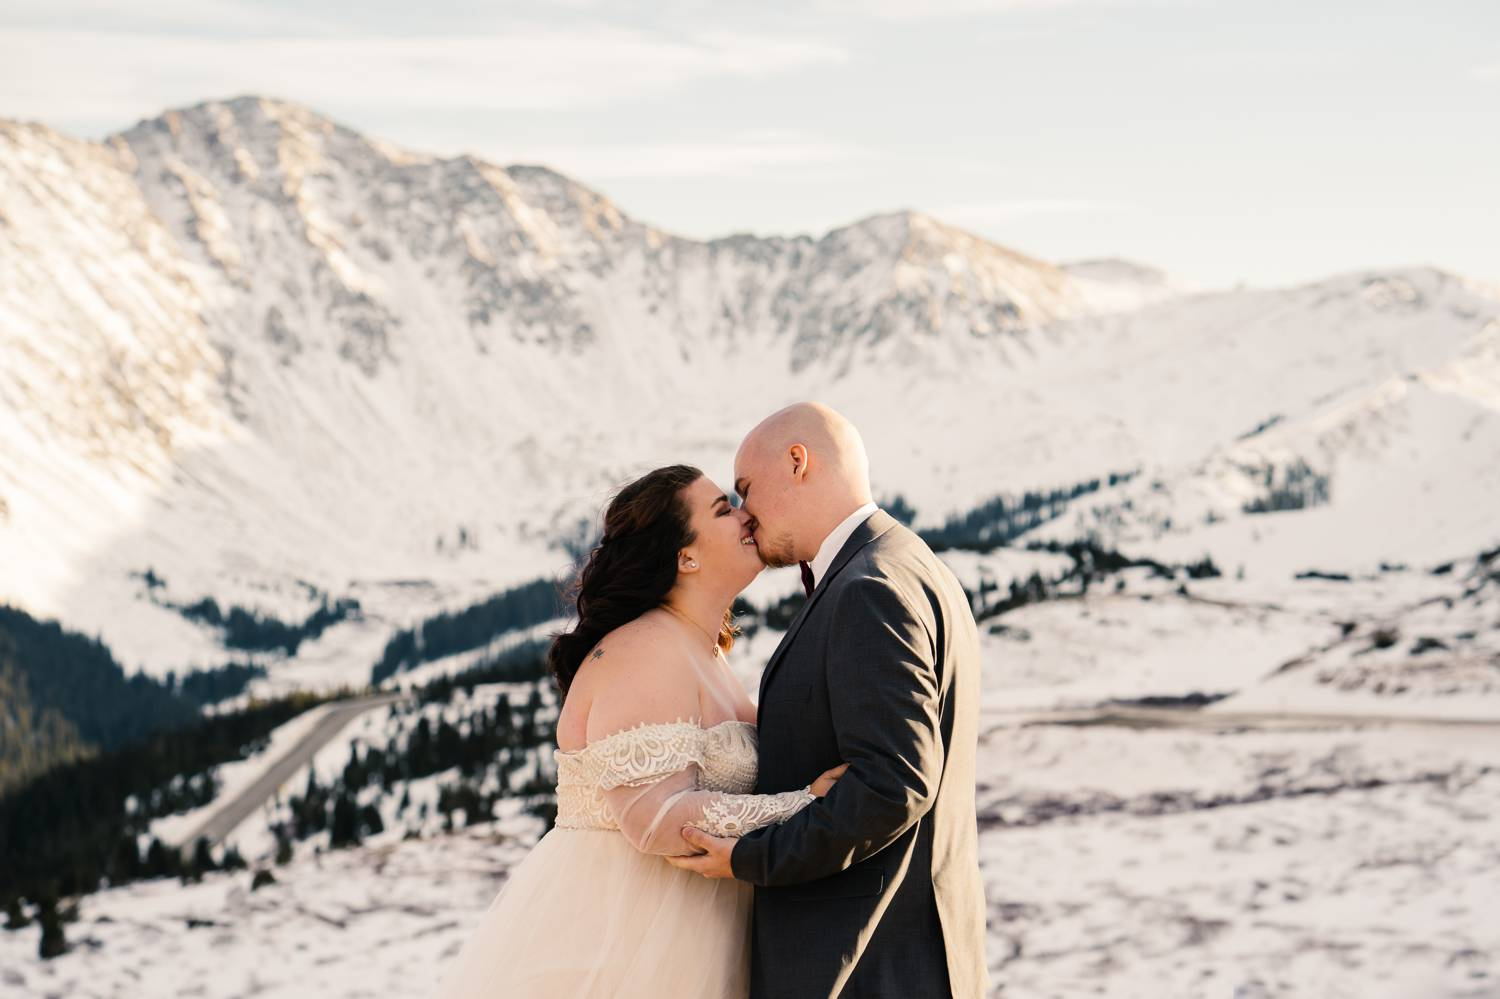 Customer Loyalty: By Nick Sparks, a bride and groom kiss in the foreground while the snowy Colorado mountains loom behind them.